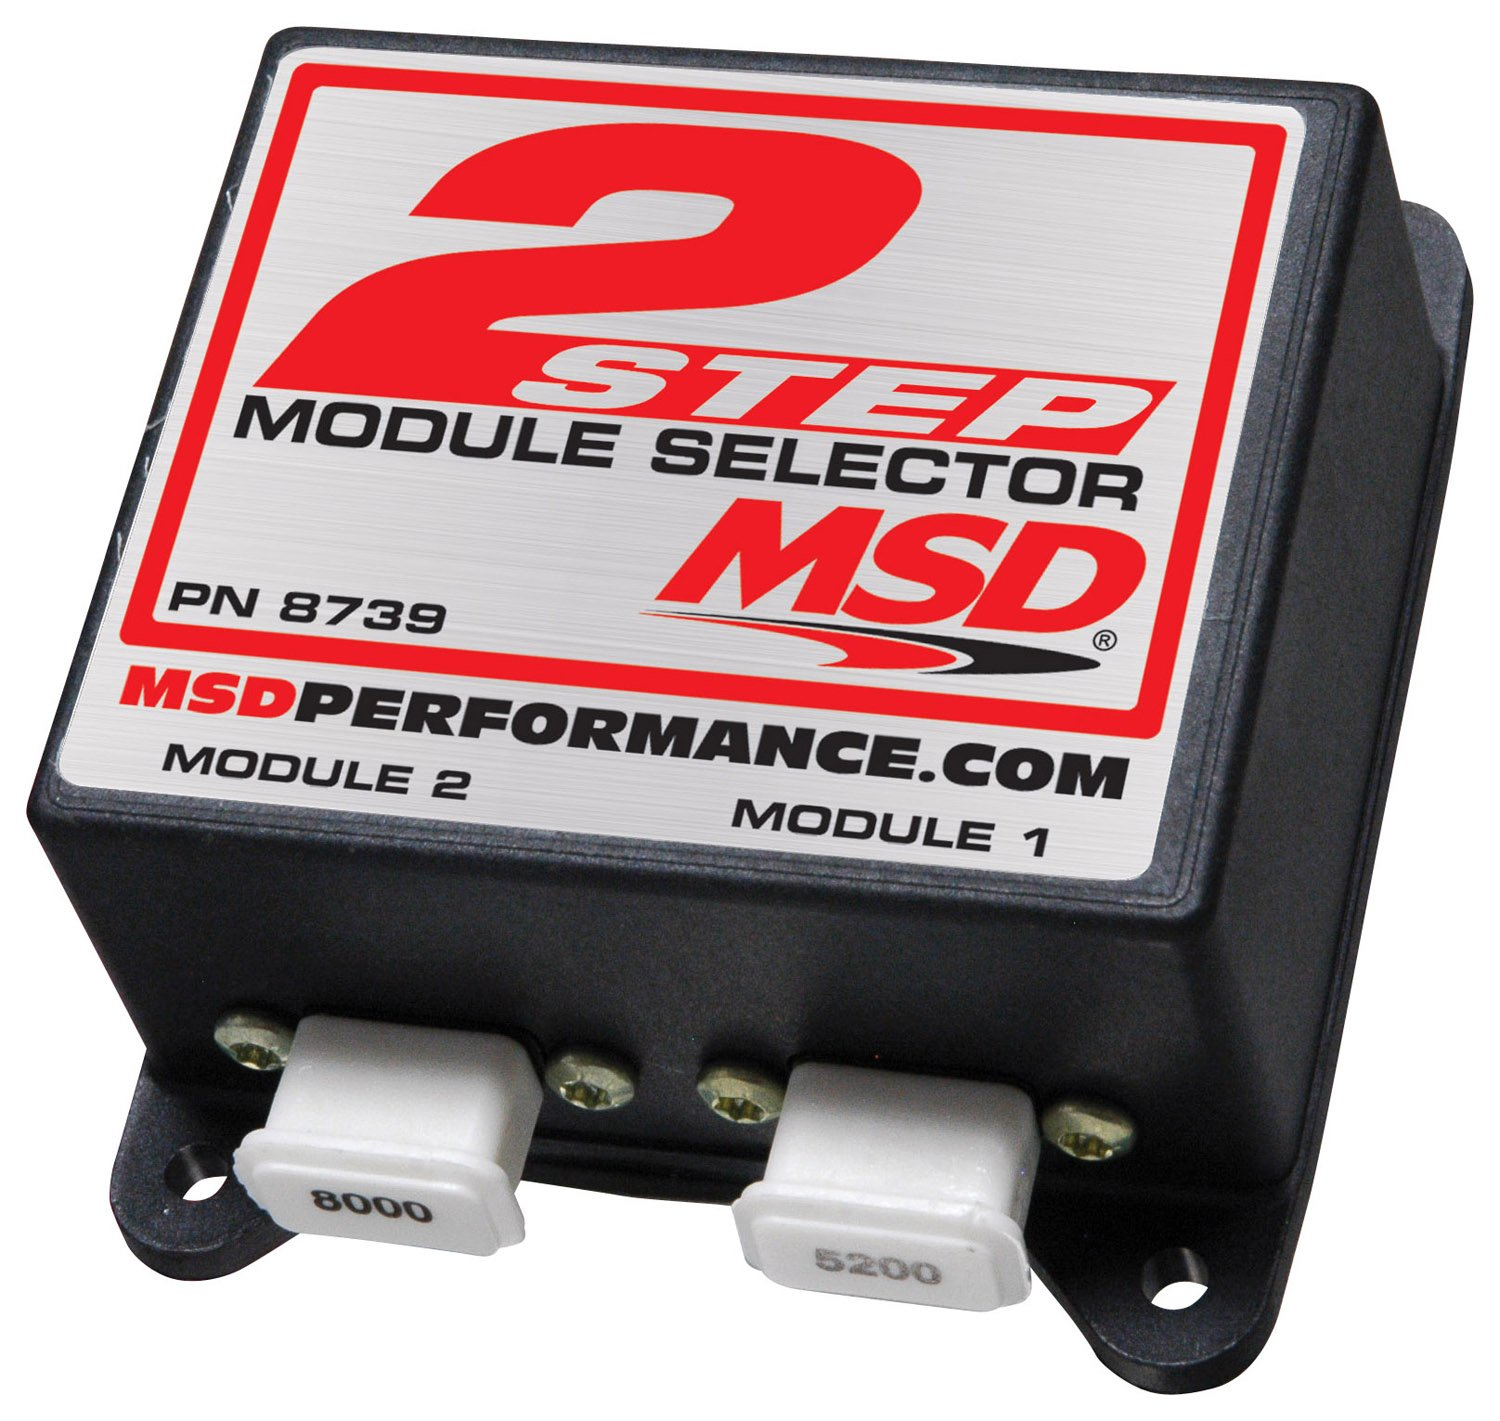 8739 msd 8739 two step module selector msd performance products msd 2 step wiring diagram at couponss.co